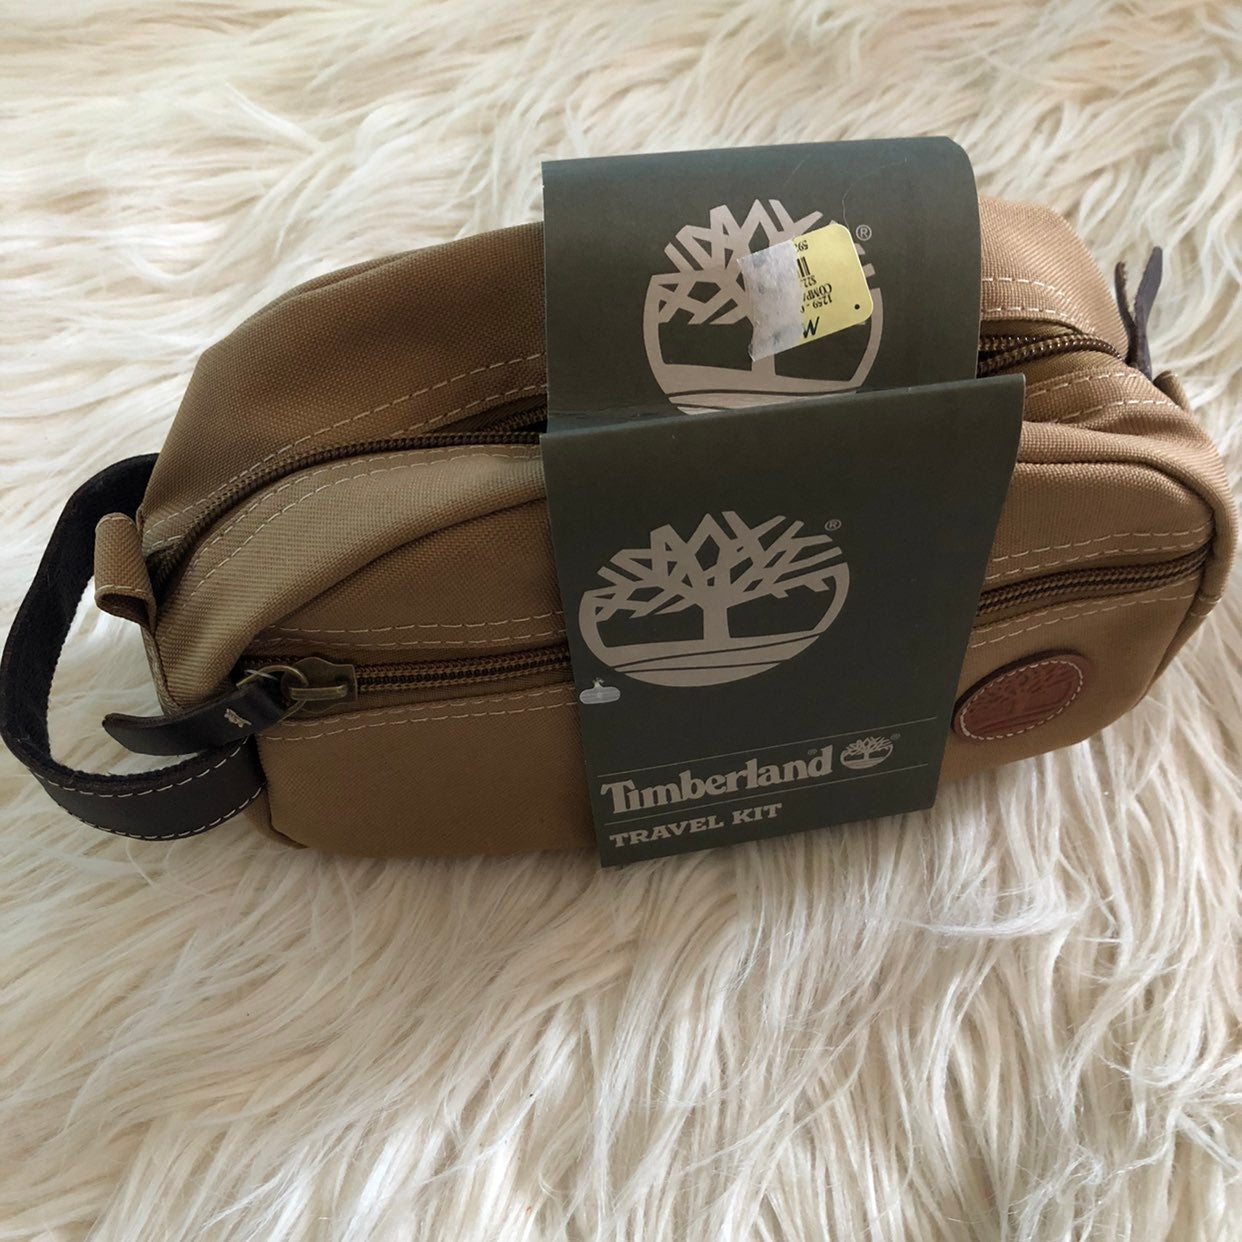 Timberland Travel Bag